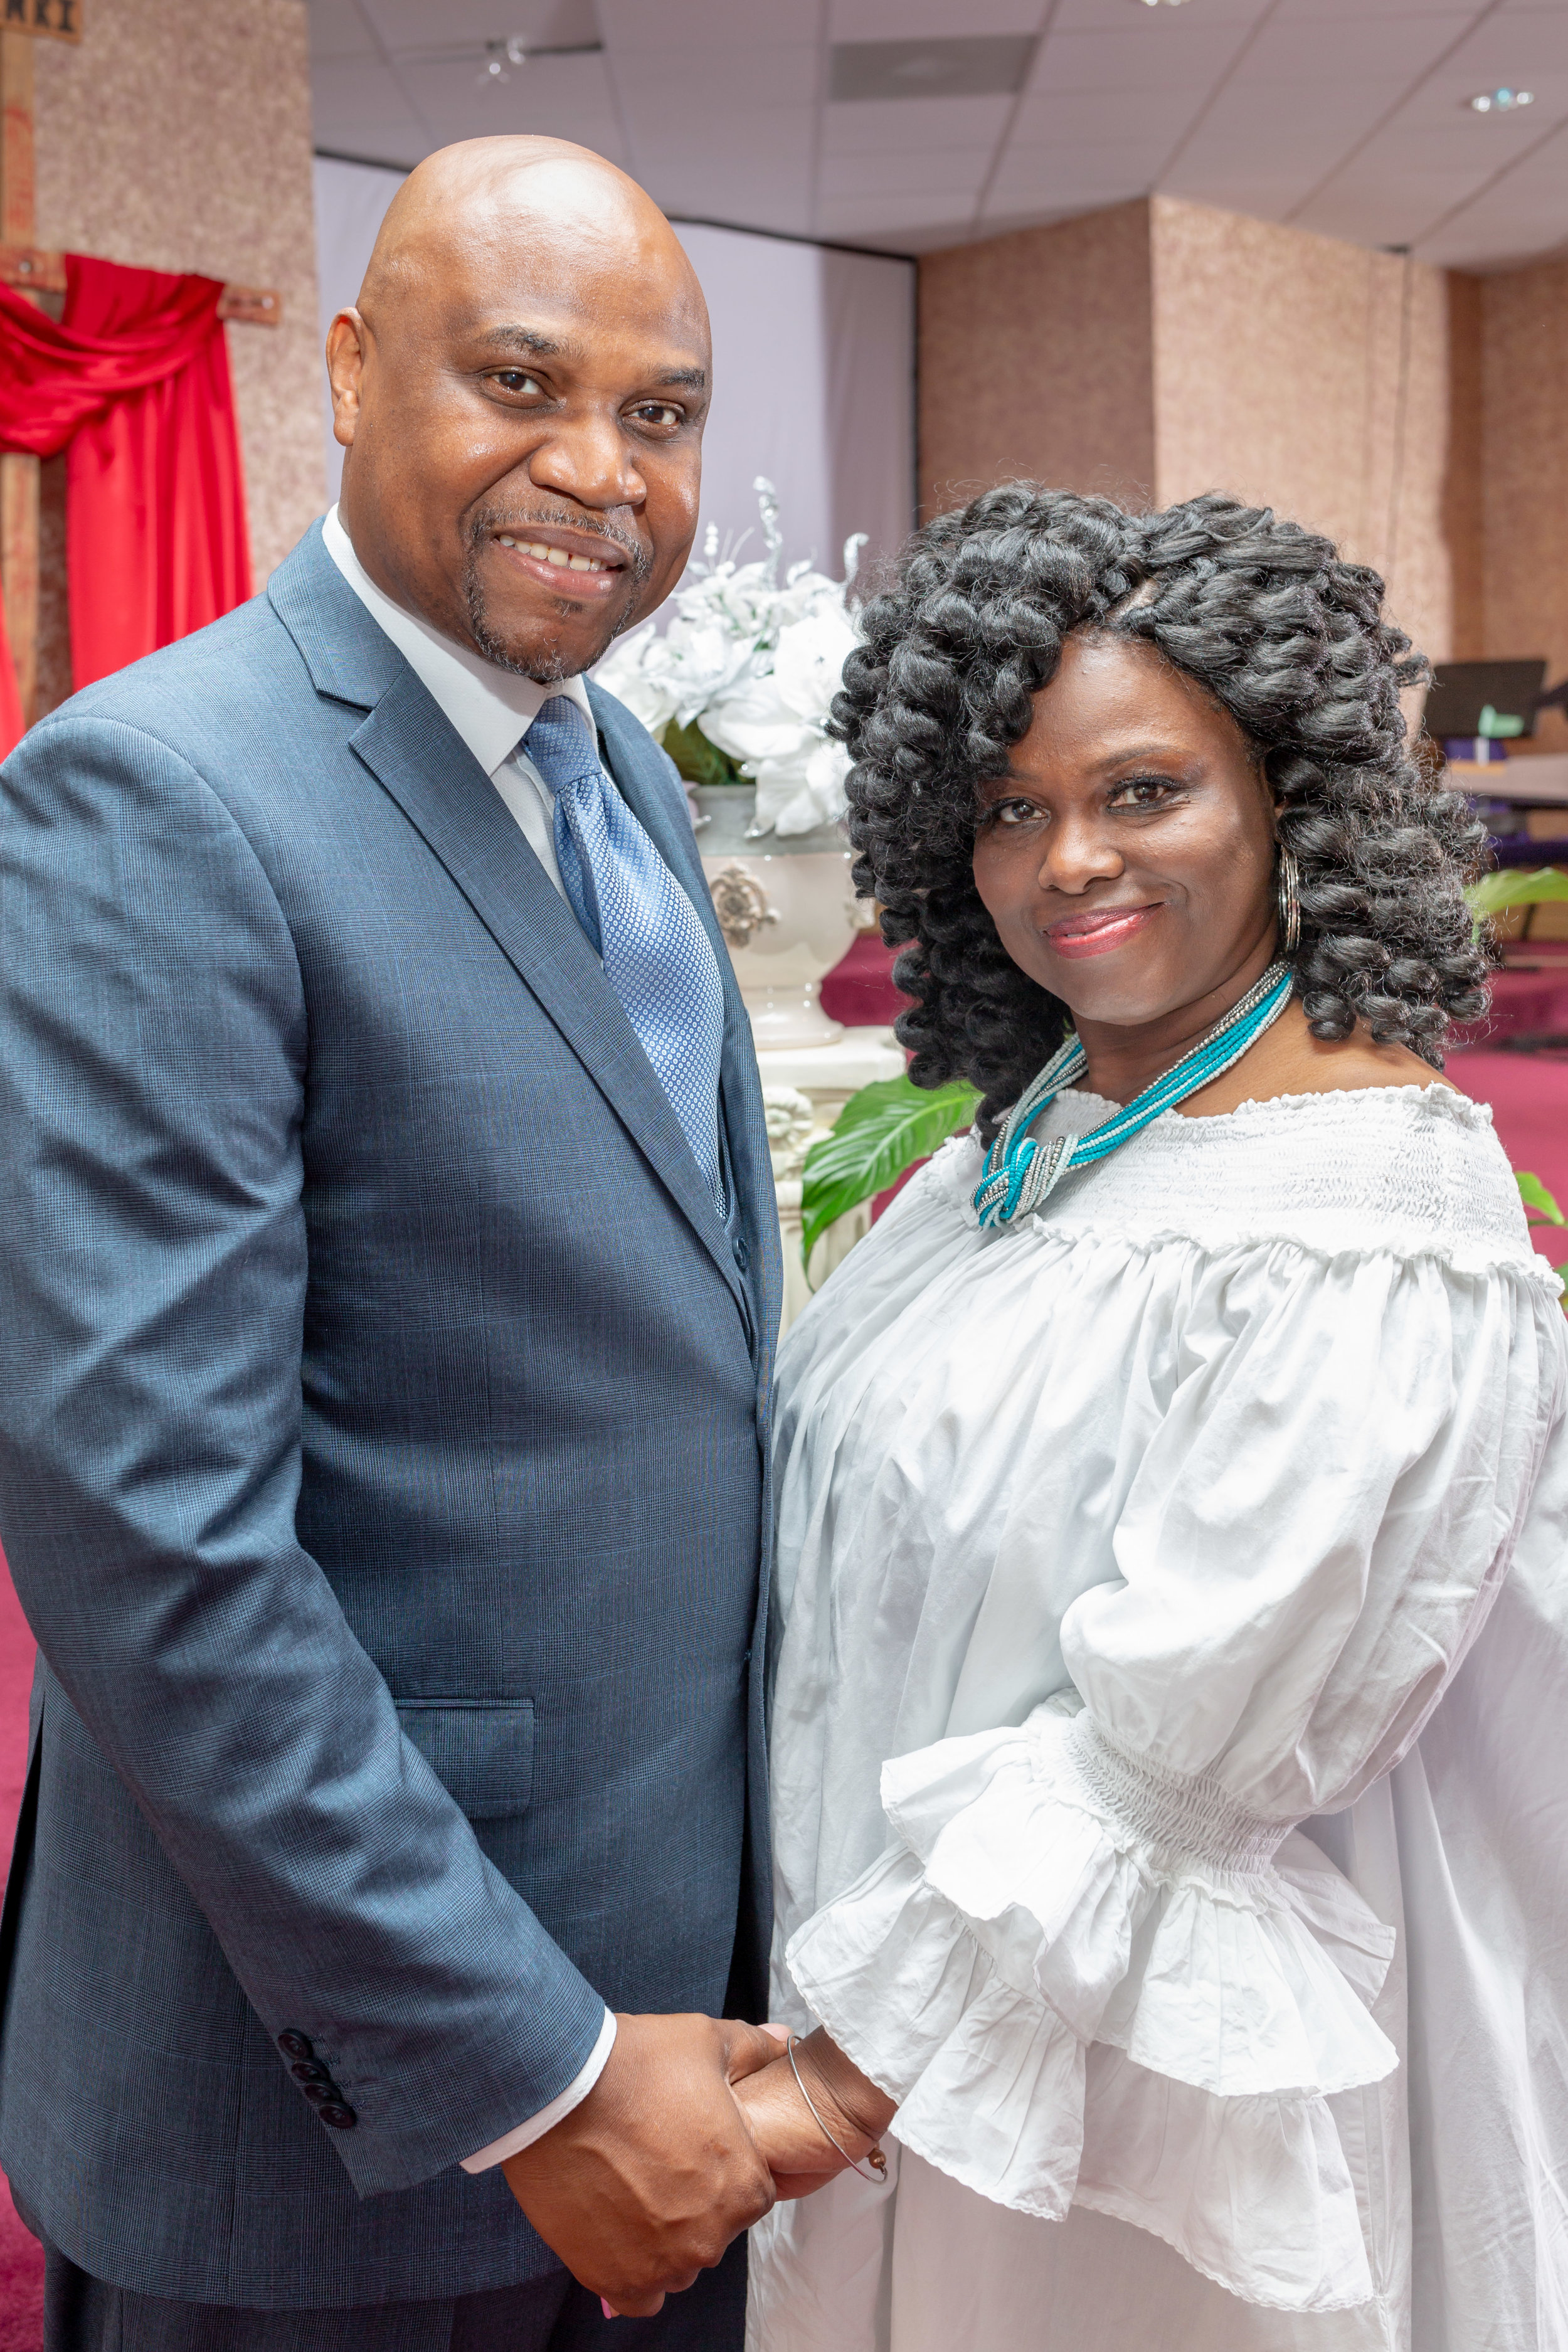 Pastor Christopher & Lady Dandra Wetherspoon,  Kings Dominion Intl' Ministries, Chicago, Illinois